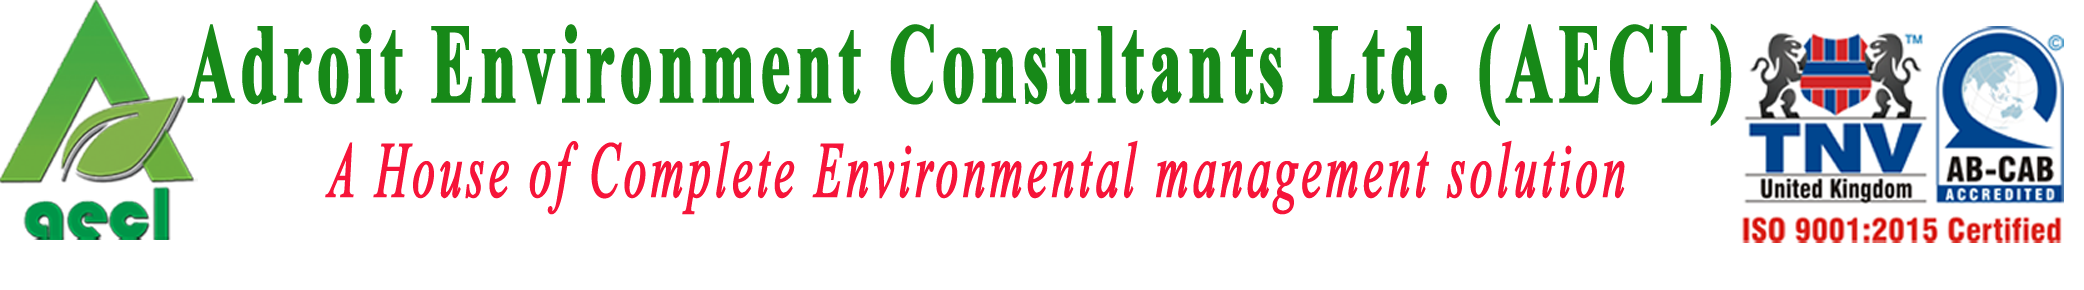 Adroit Environment Consultants Limited